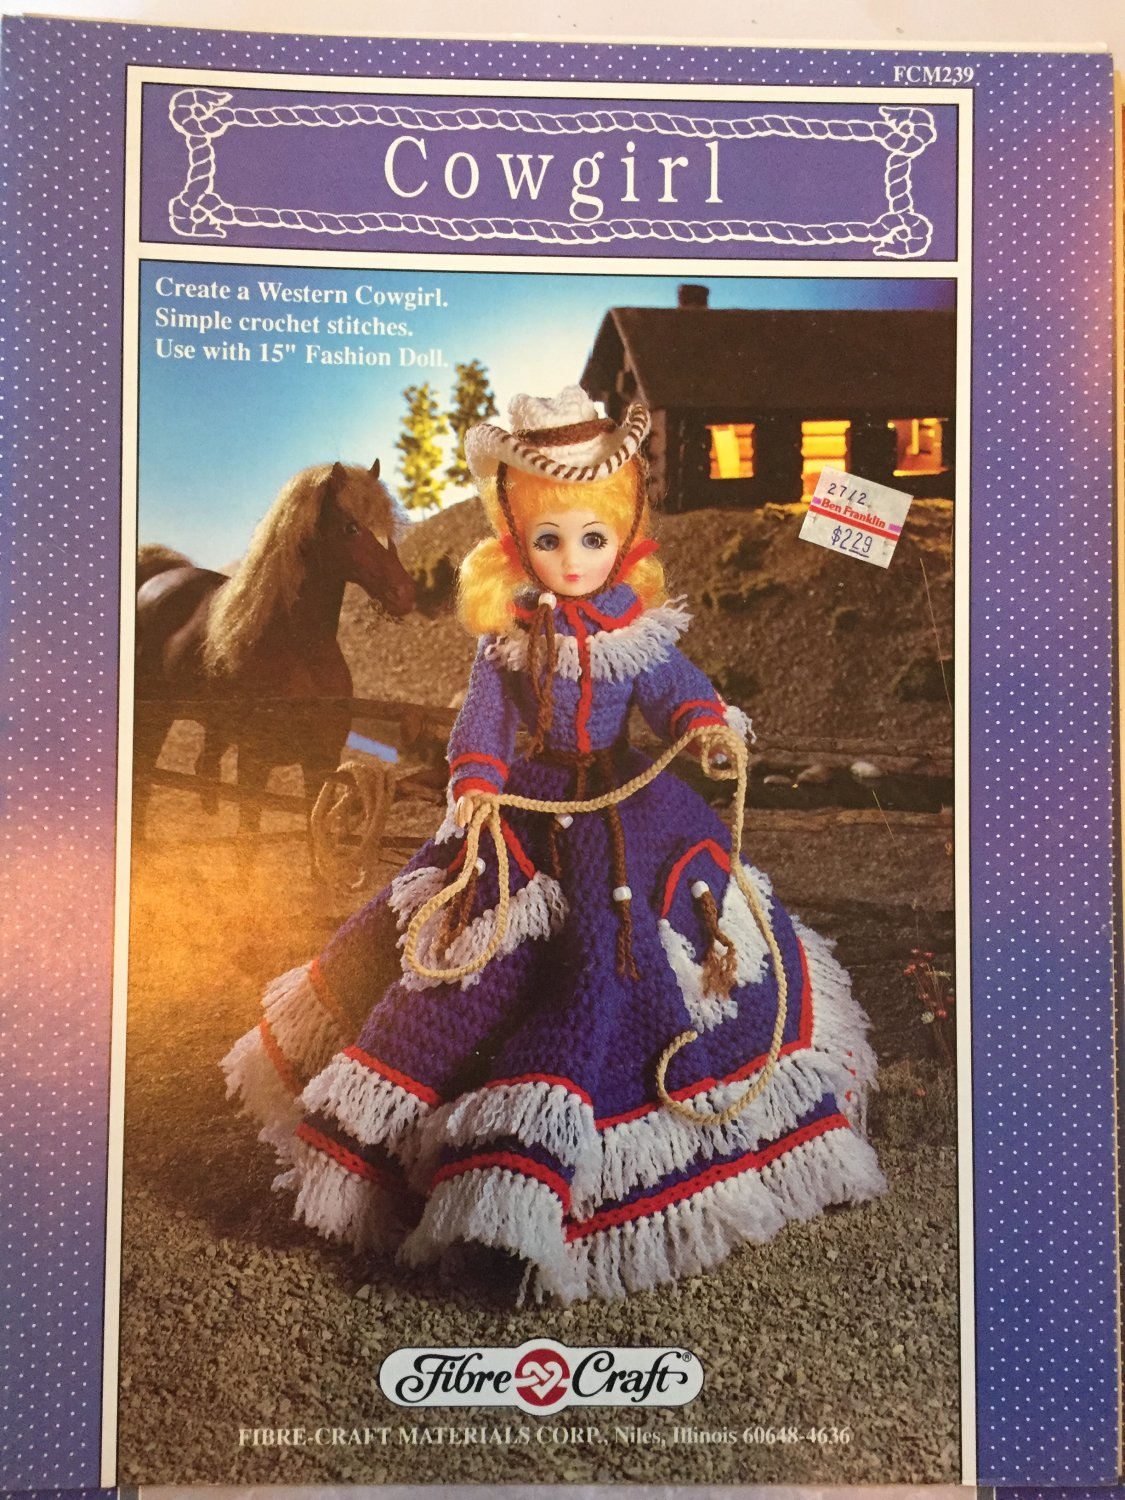 """Fibre Craft 15"""" Fashion Doll Cowgirl Outfit FCM239 Crochet Pattern"""